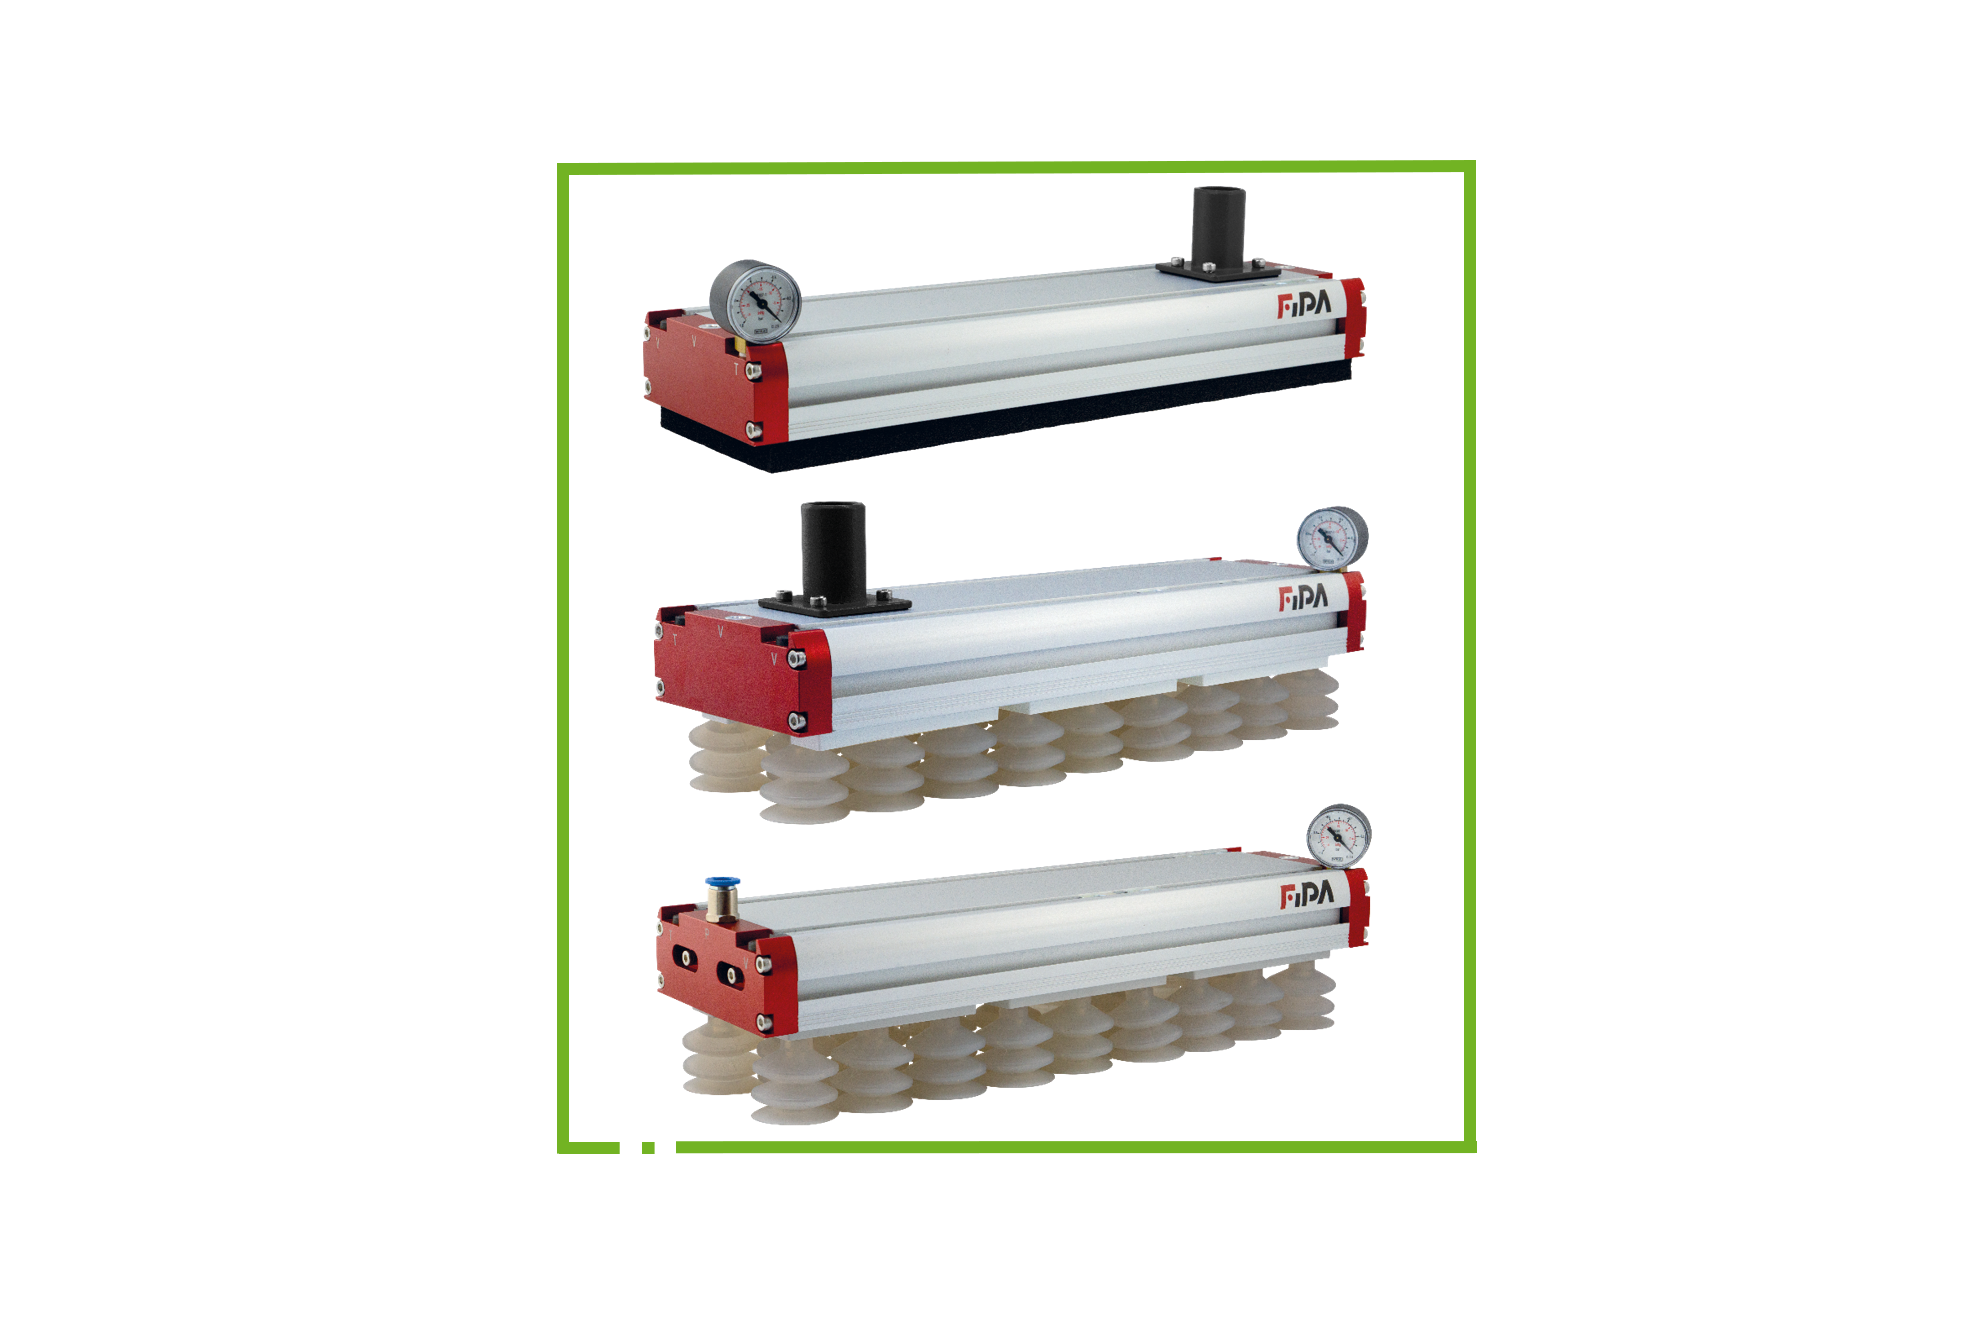 NEW: FIPA GRIPPER AREA - Solutions for automated handling